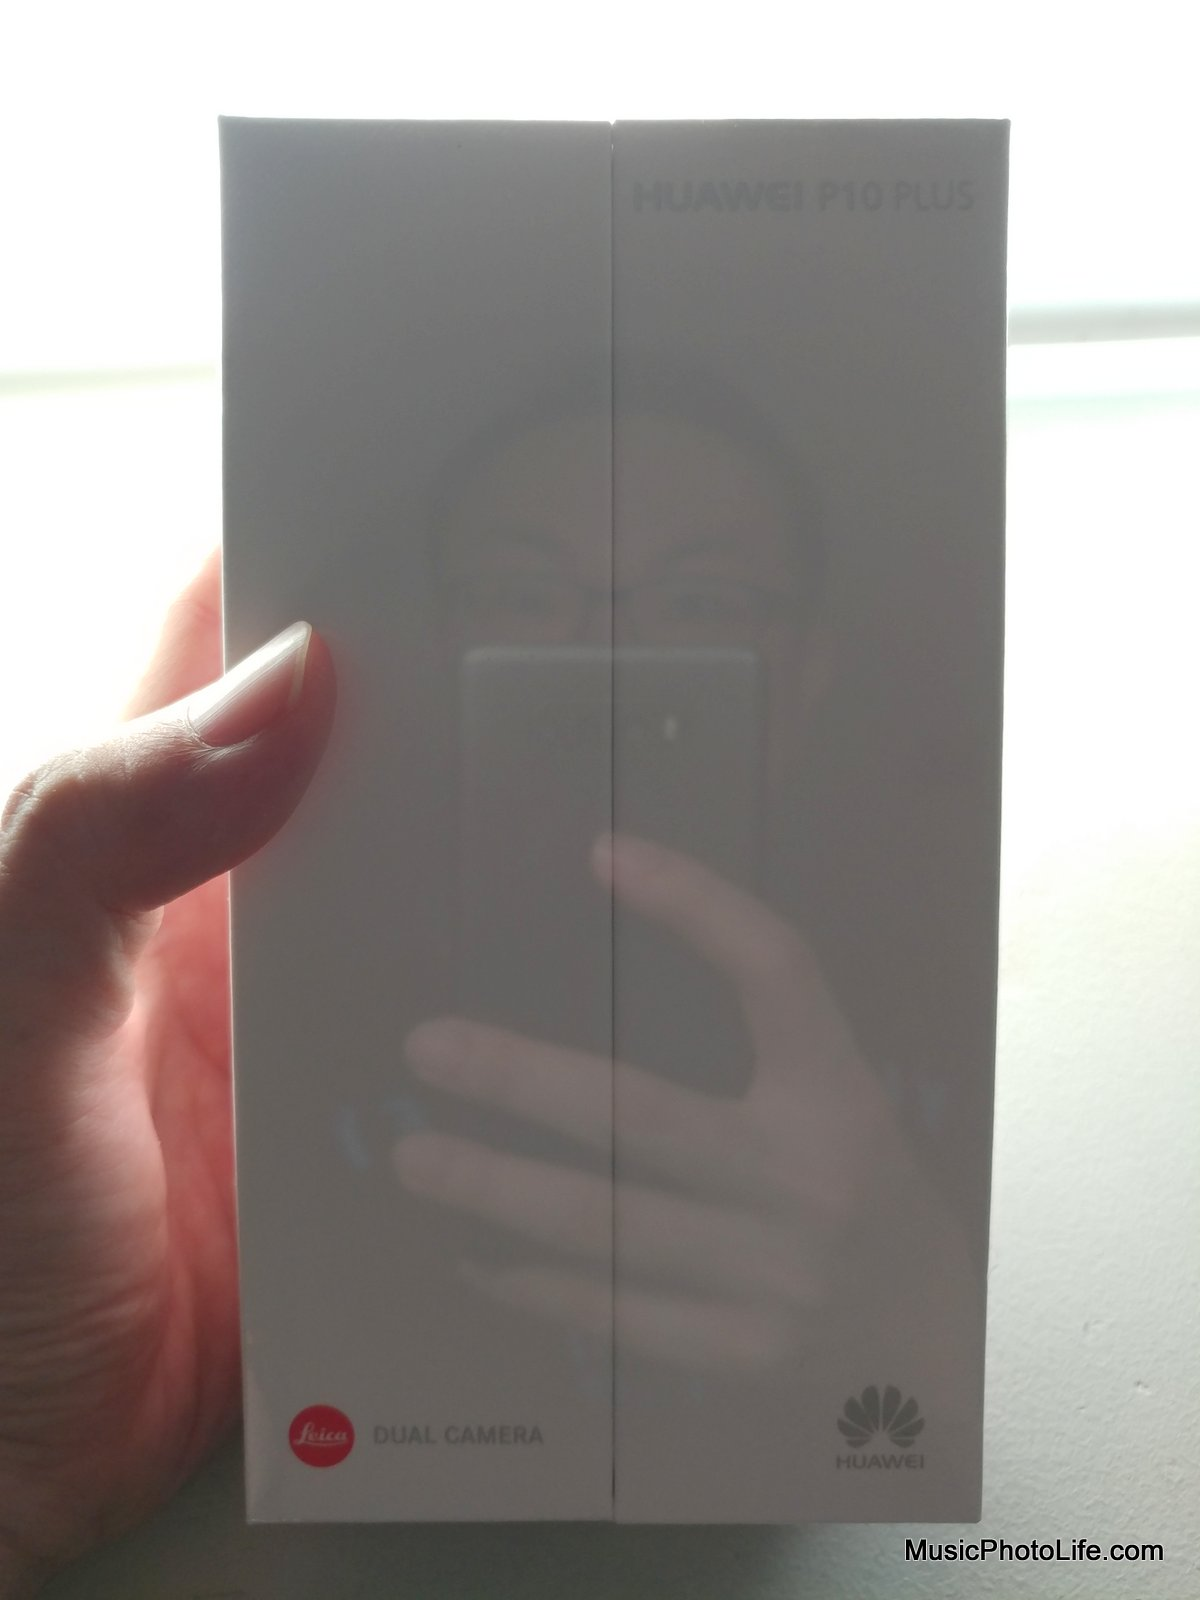 Huawei P10 Plus sealed box ready for unboxing by musicphotolife.com